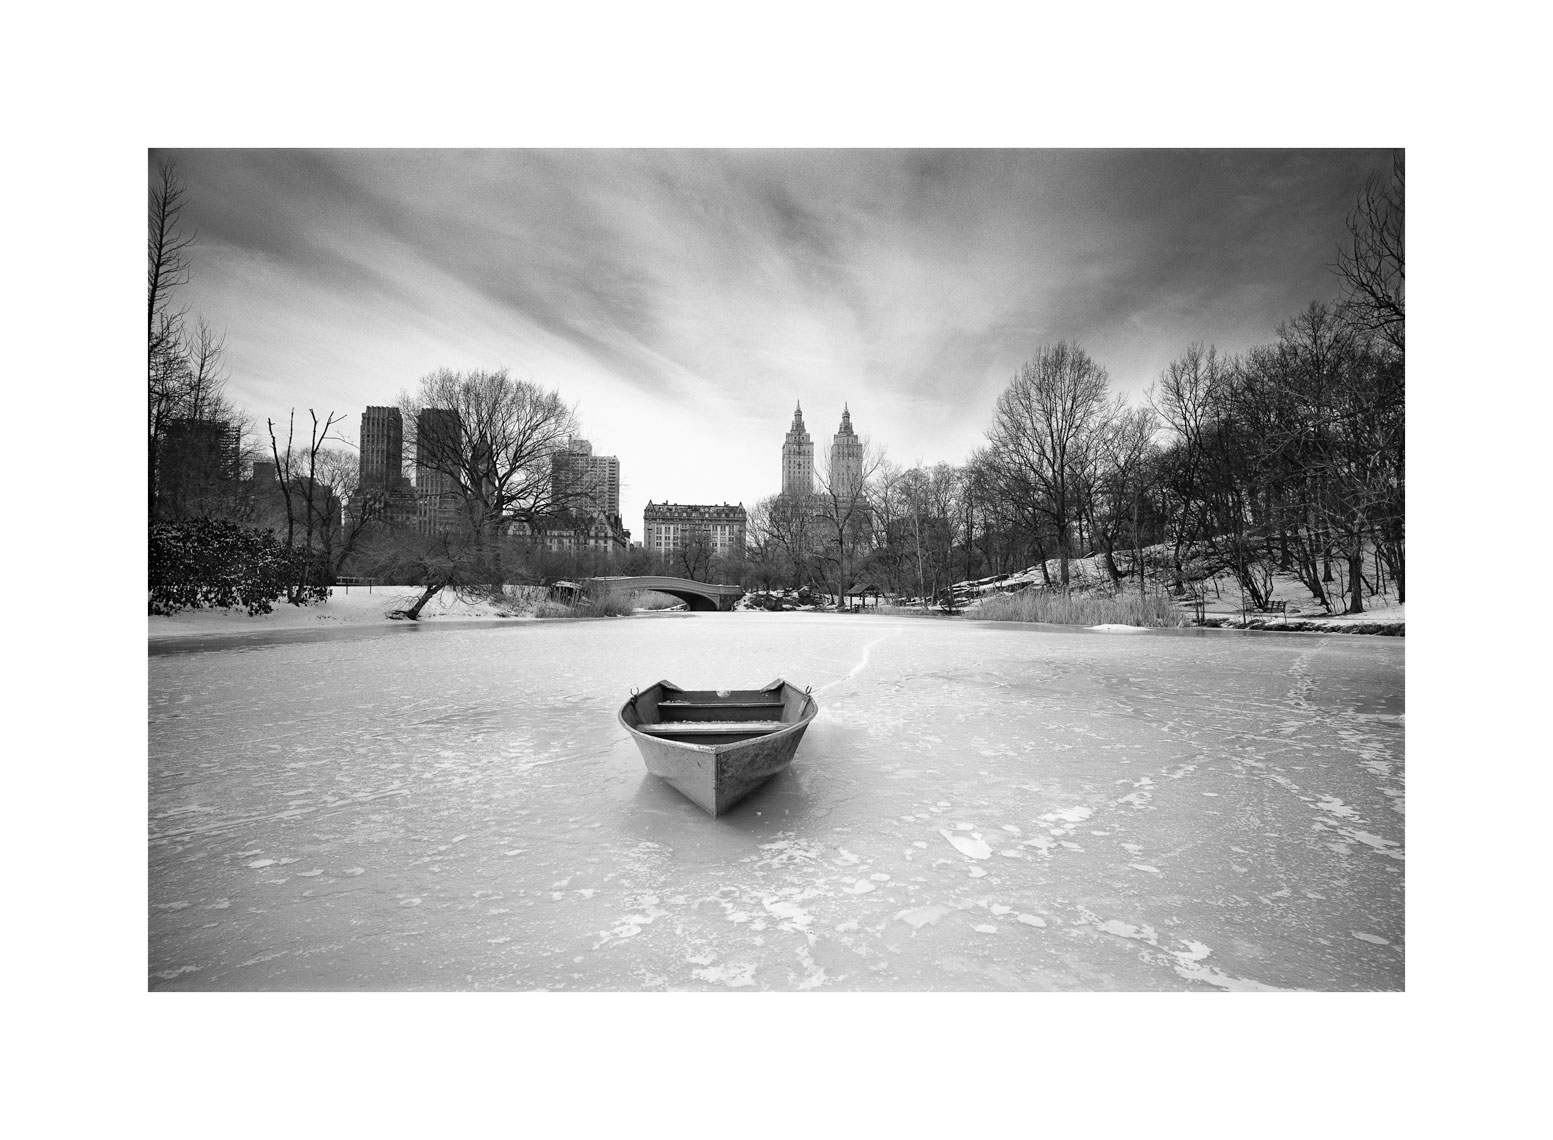 Boat-in-ice-print-ready-3.jpg